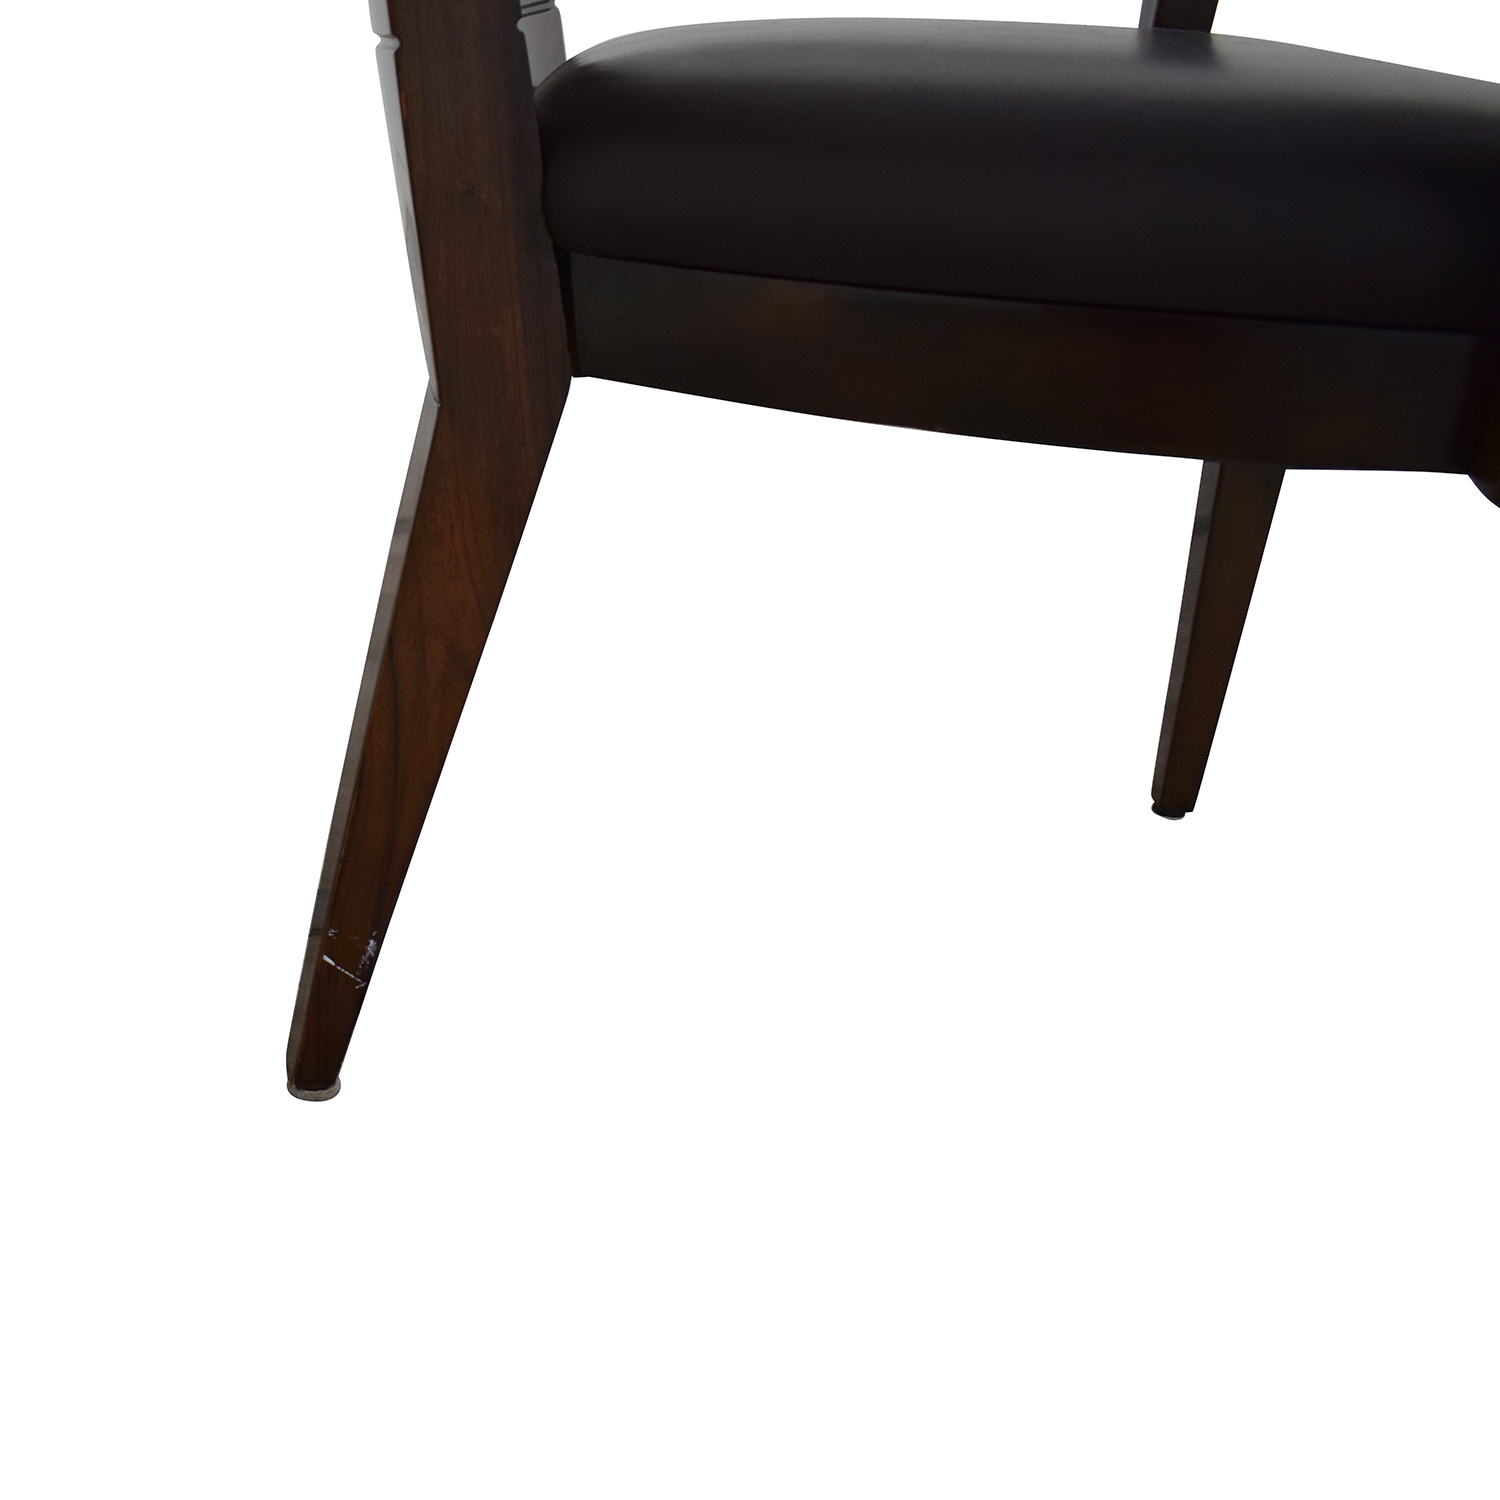 Elio High Gloss Wood and Leather Chair / Dining Chairs